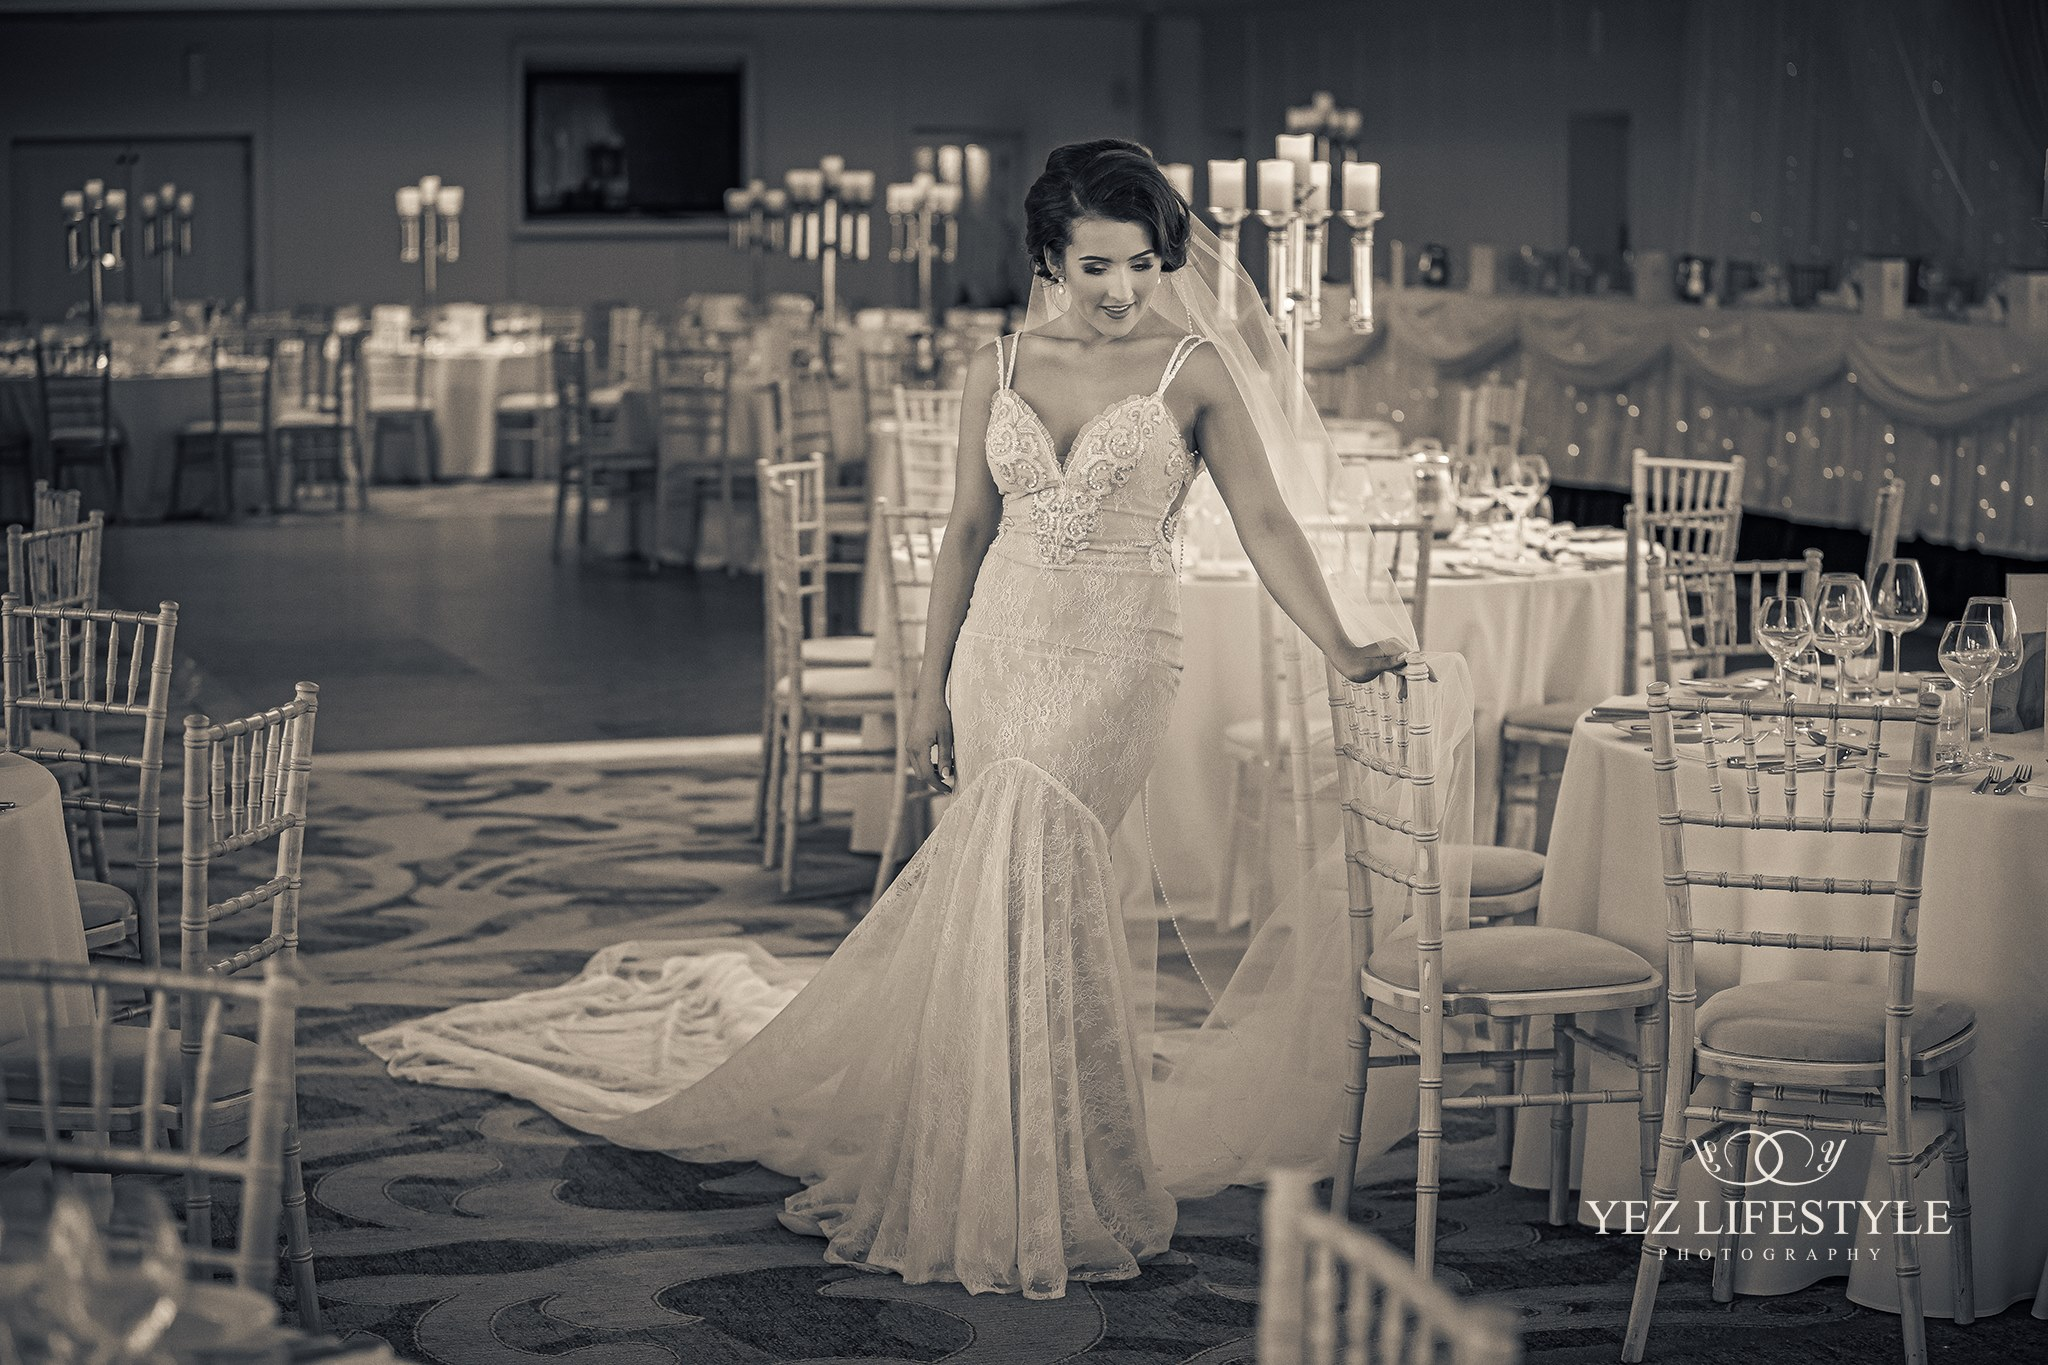 norfolk wedding photographers-photo of bride getting ready.jpg